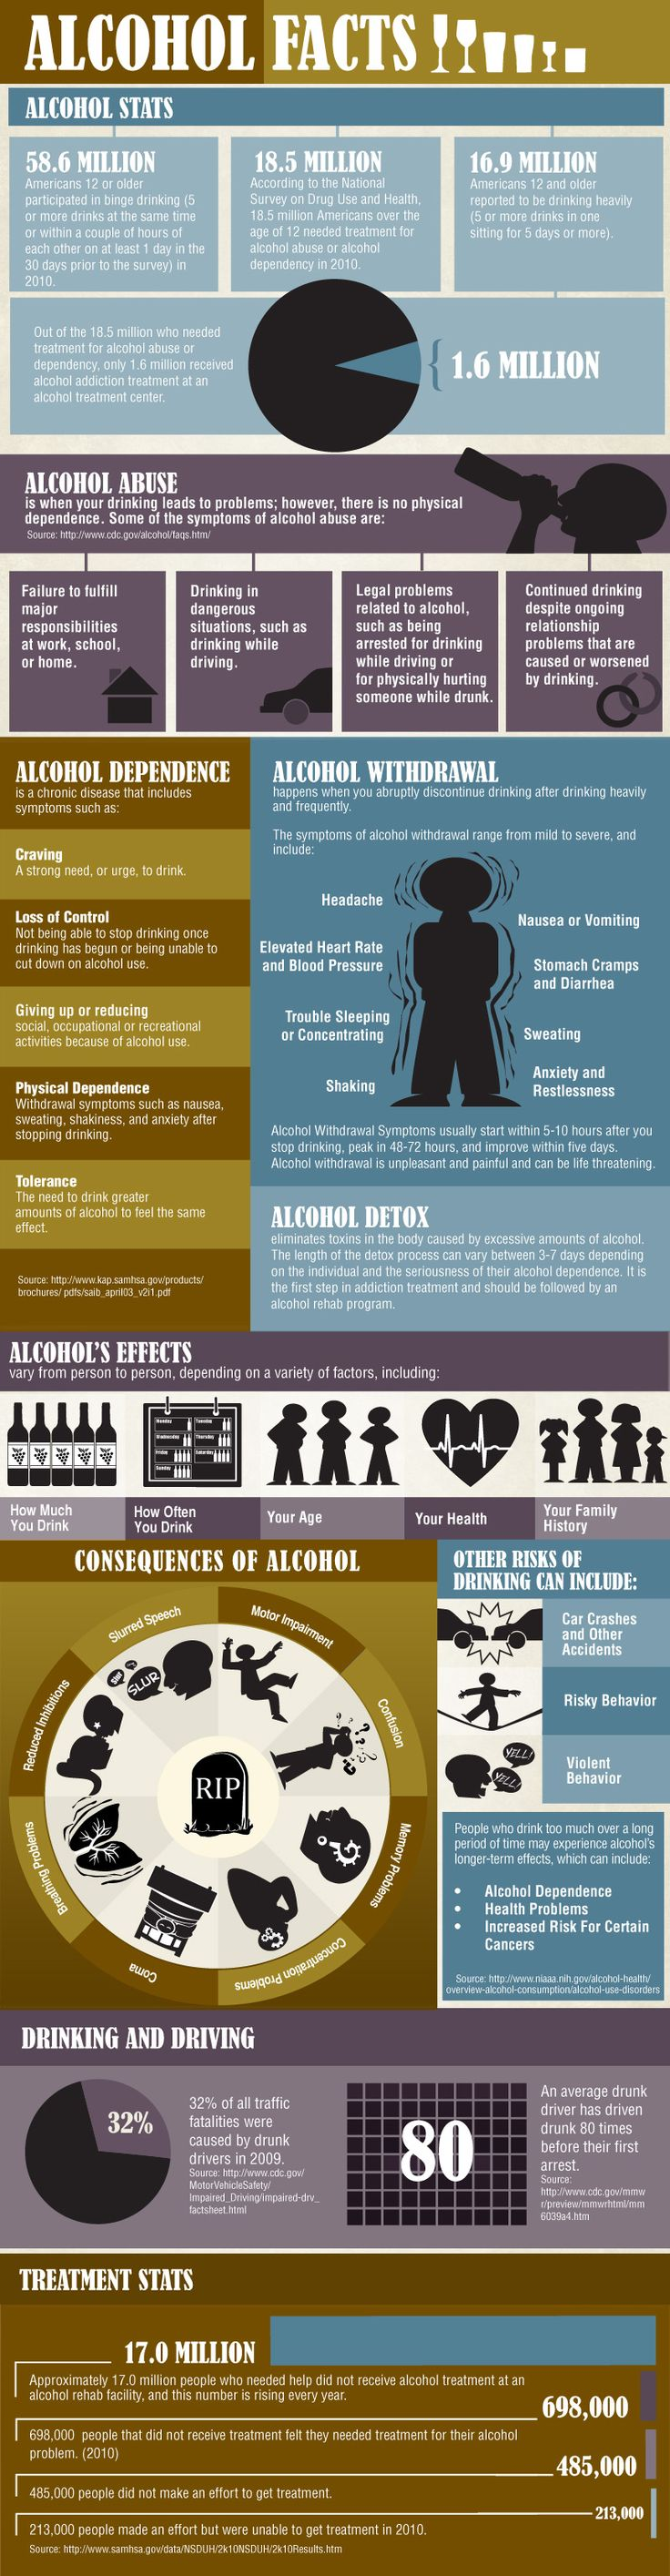 Alcohol Abuse Leads to Seven Different Kinds of Cancer Learn the signs of alcohol abuse, addiction, withdrawal symptoms and how alcohol can negatively affect your life.